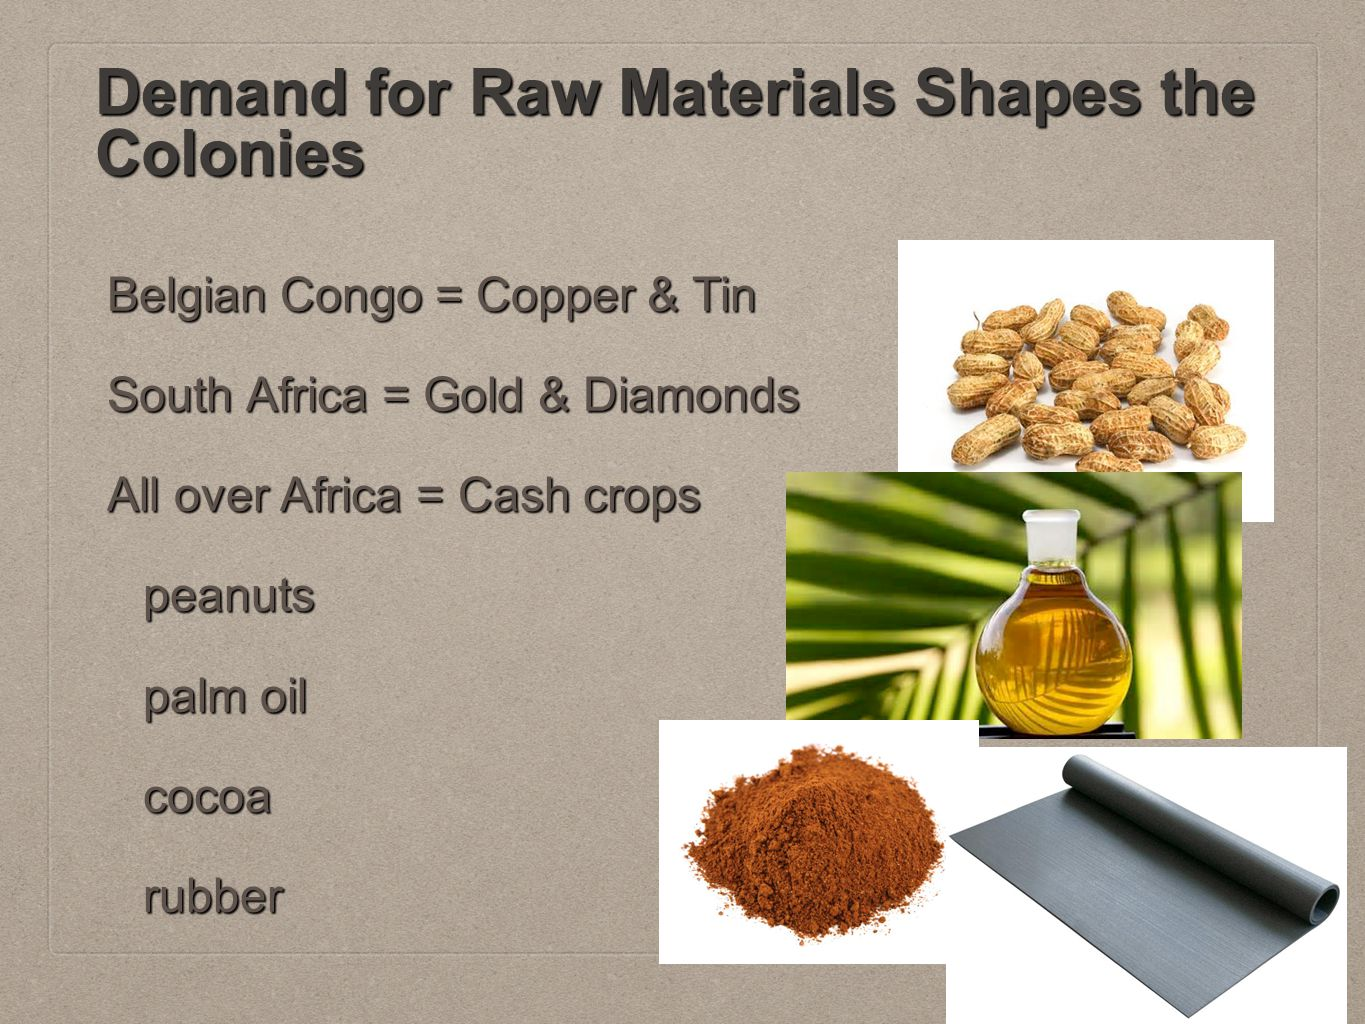 Demand for Raw Materials Shapes the Colonies